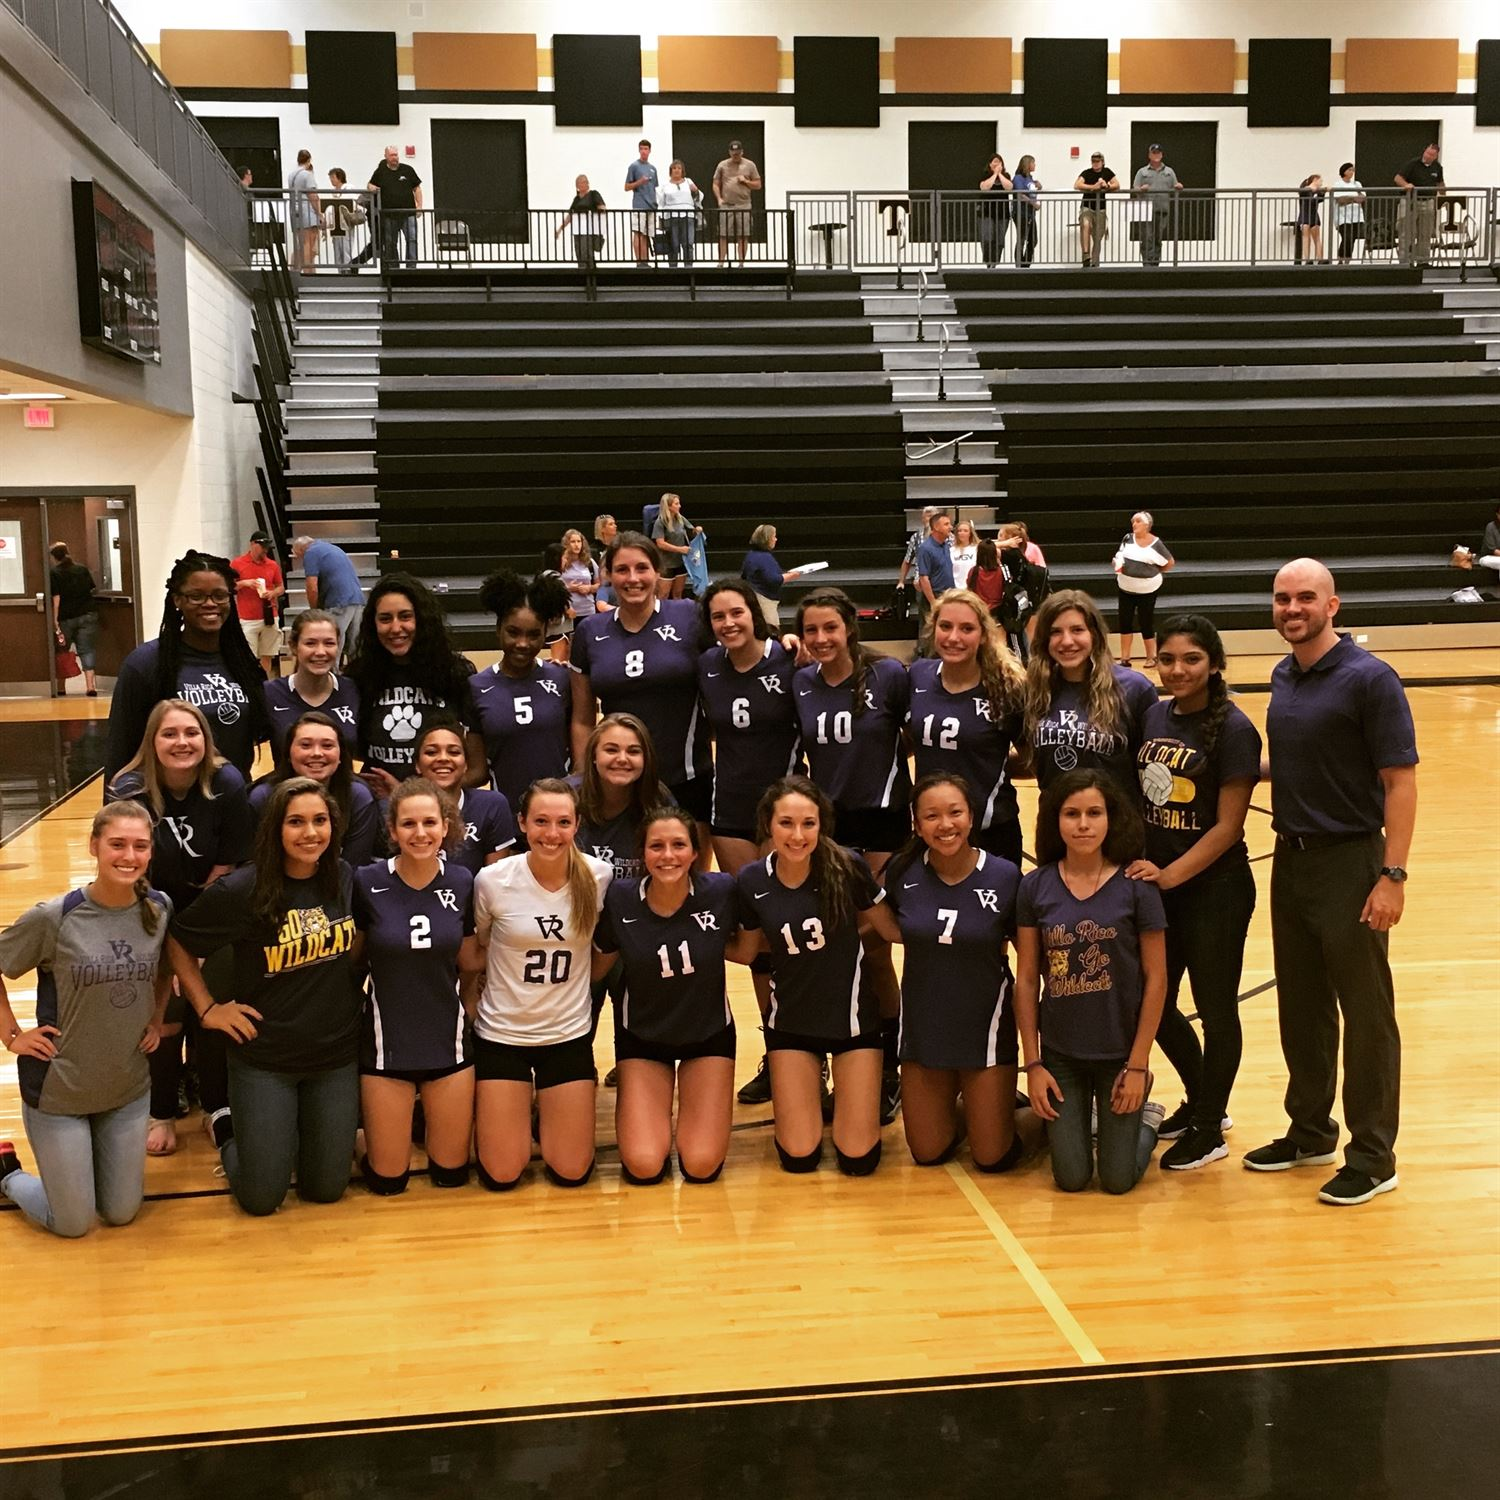 Villa Rica High School - Girls' Varsity Volleyball